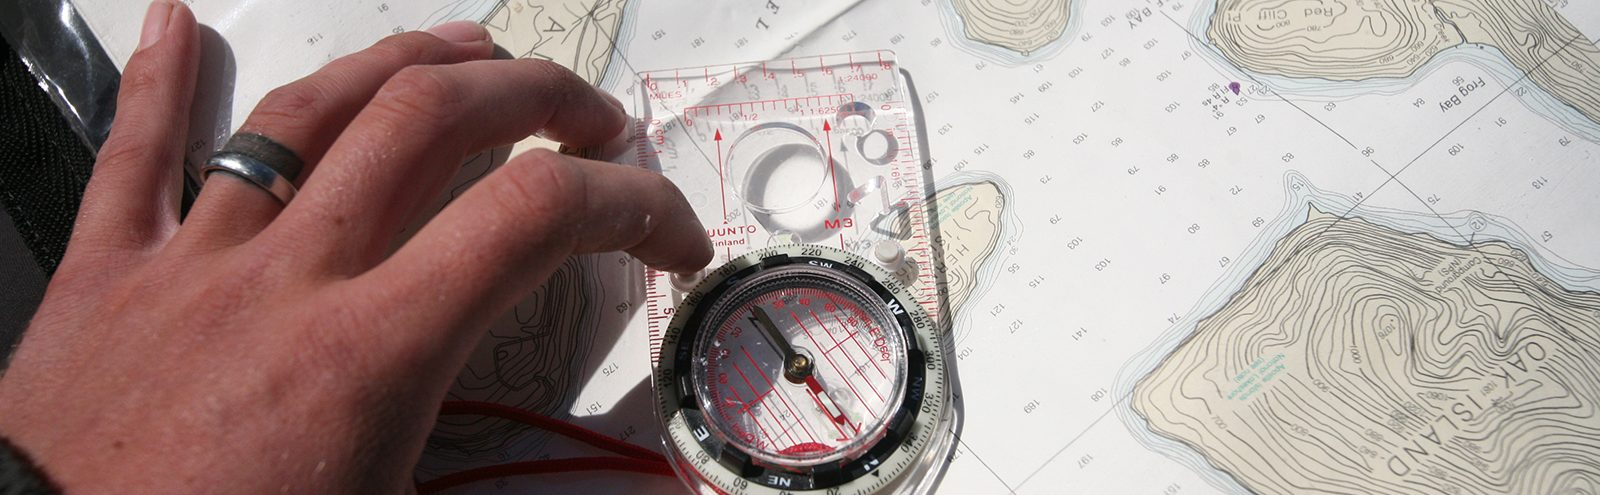 Northland College Map and Compass